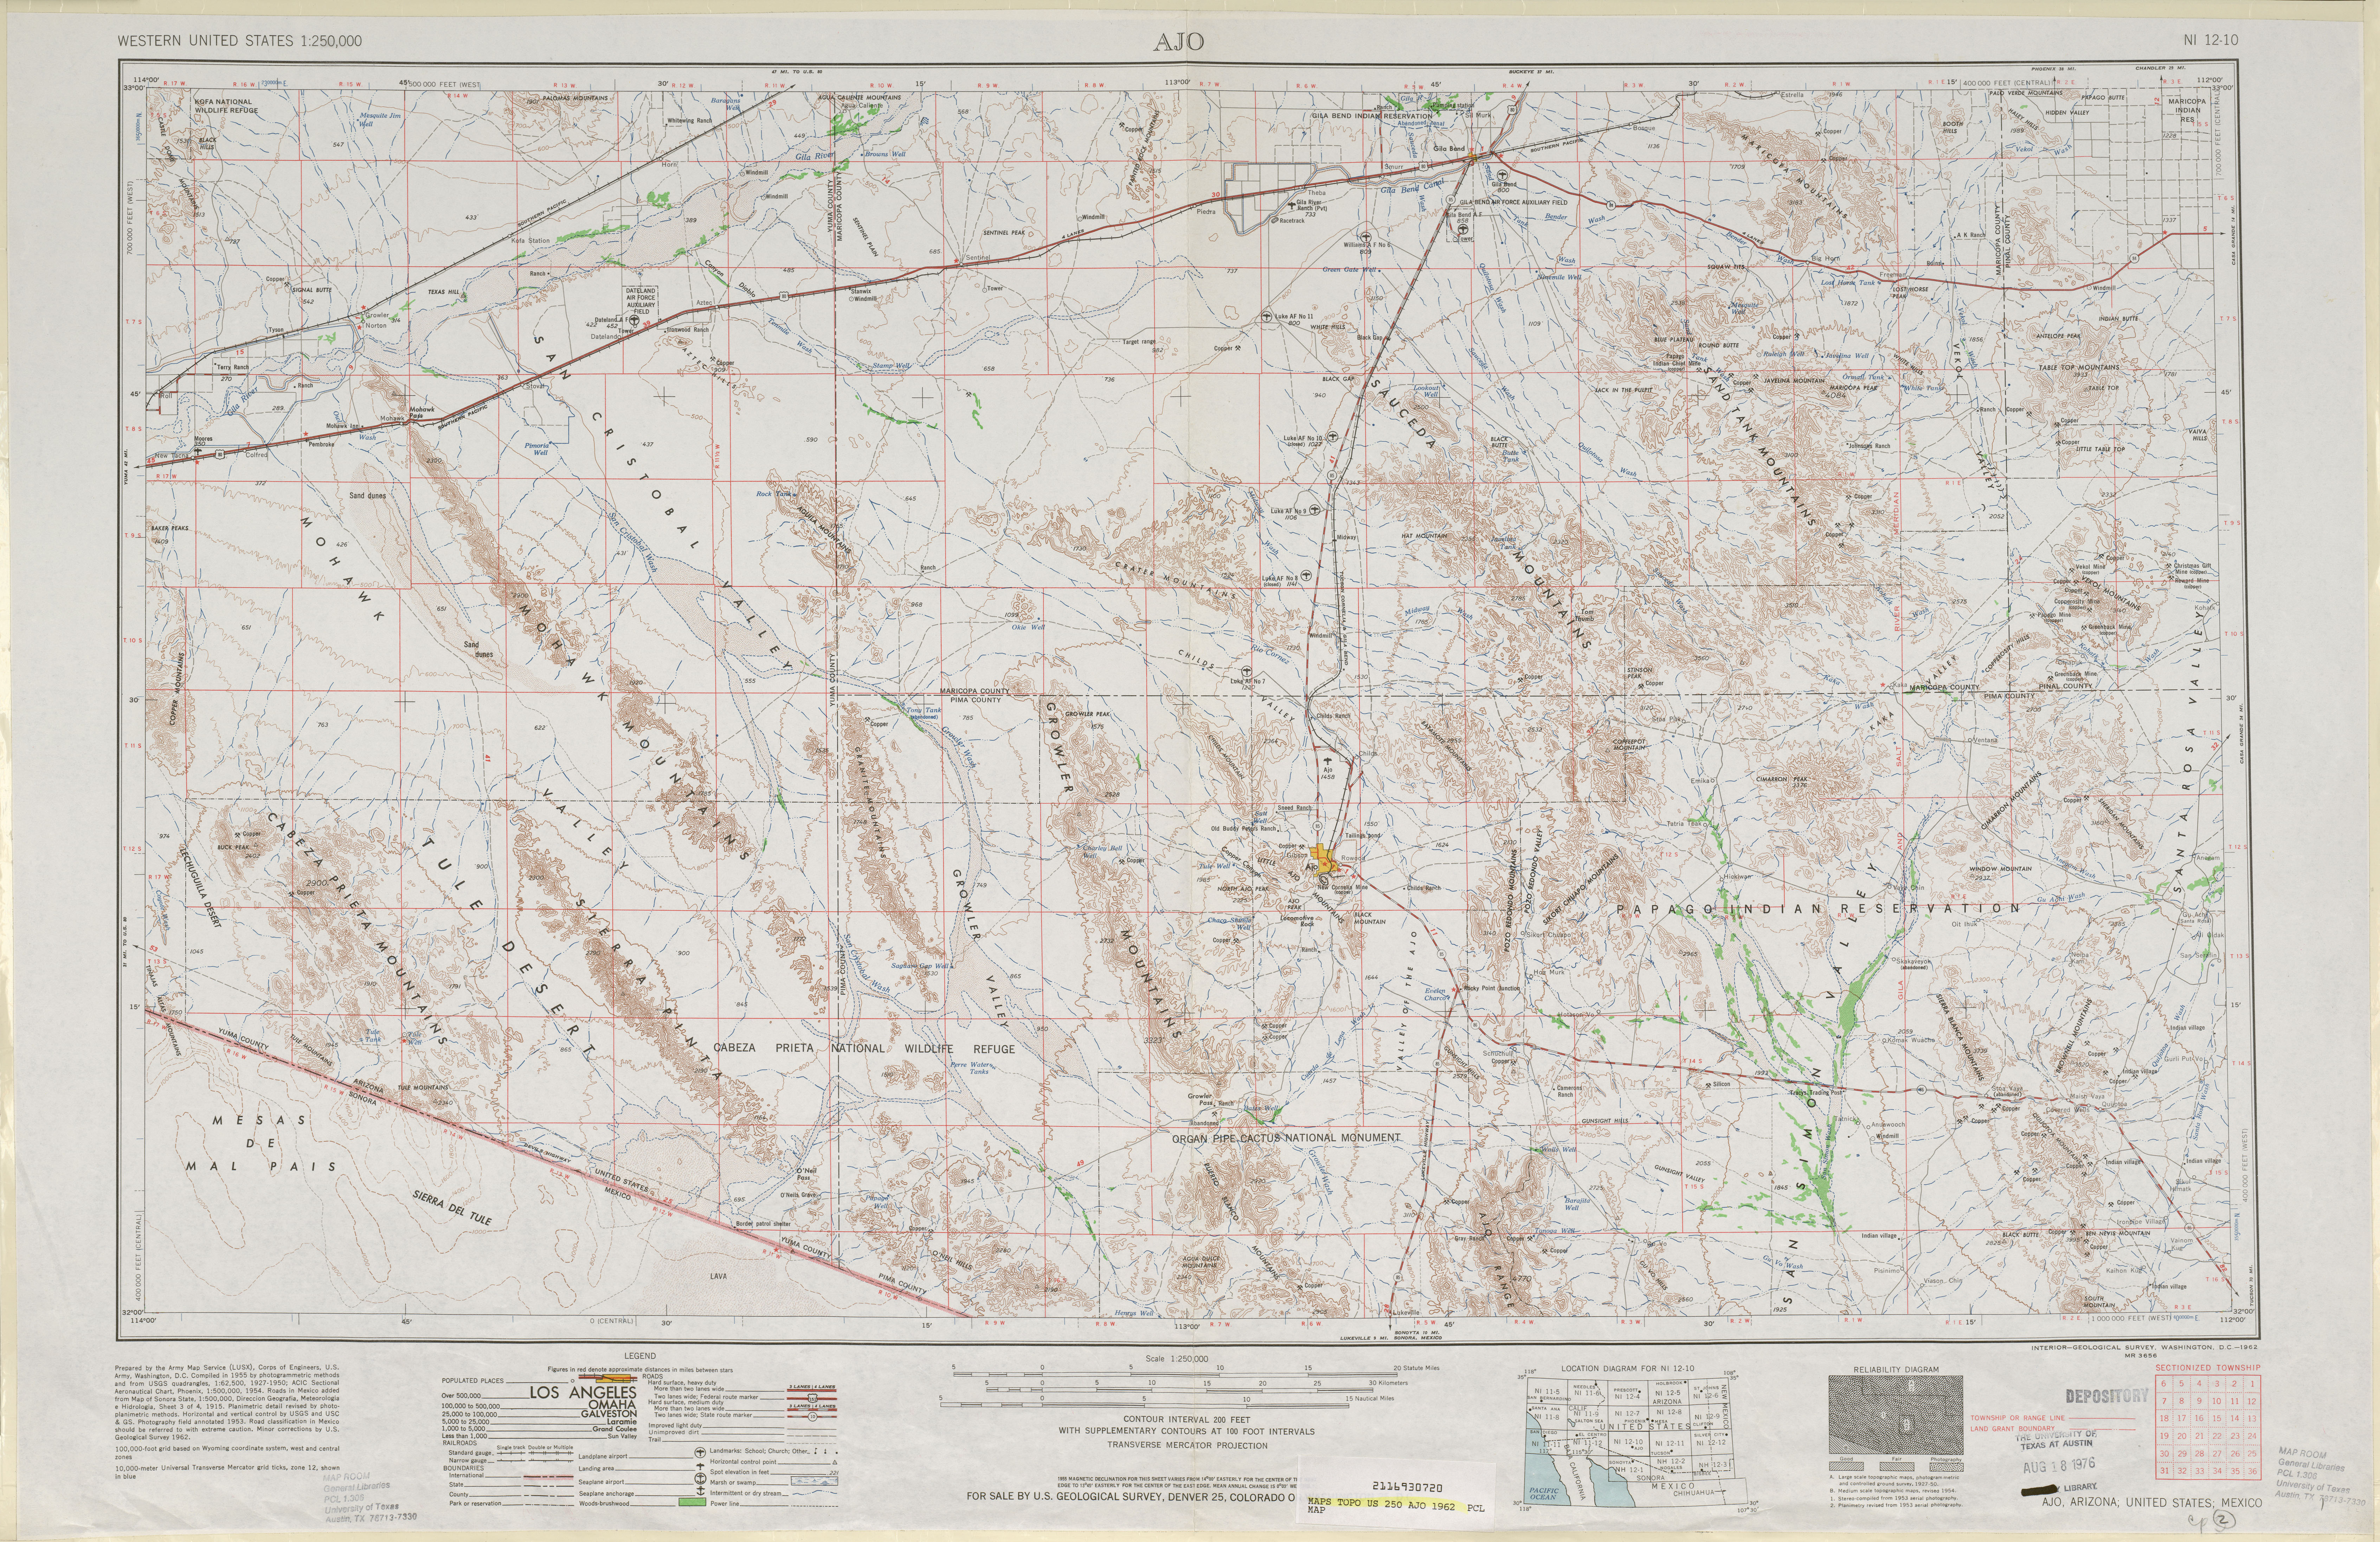 Ajo Topographic Map Sheet, United States 1962